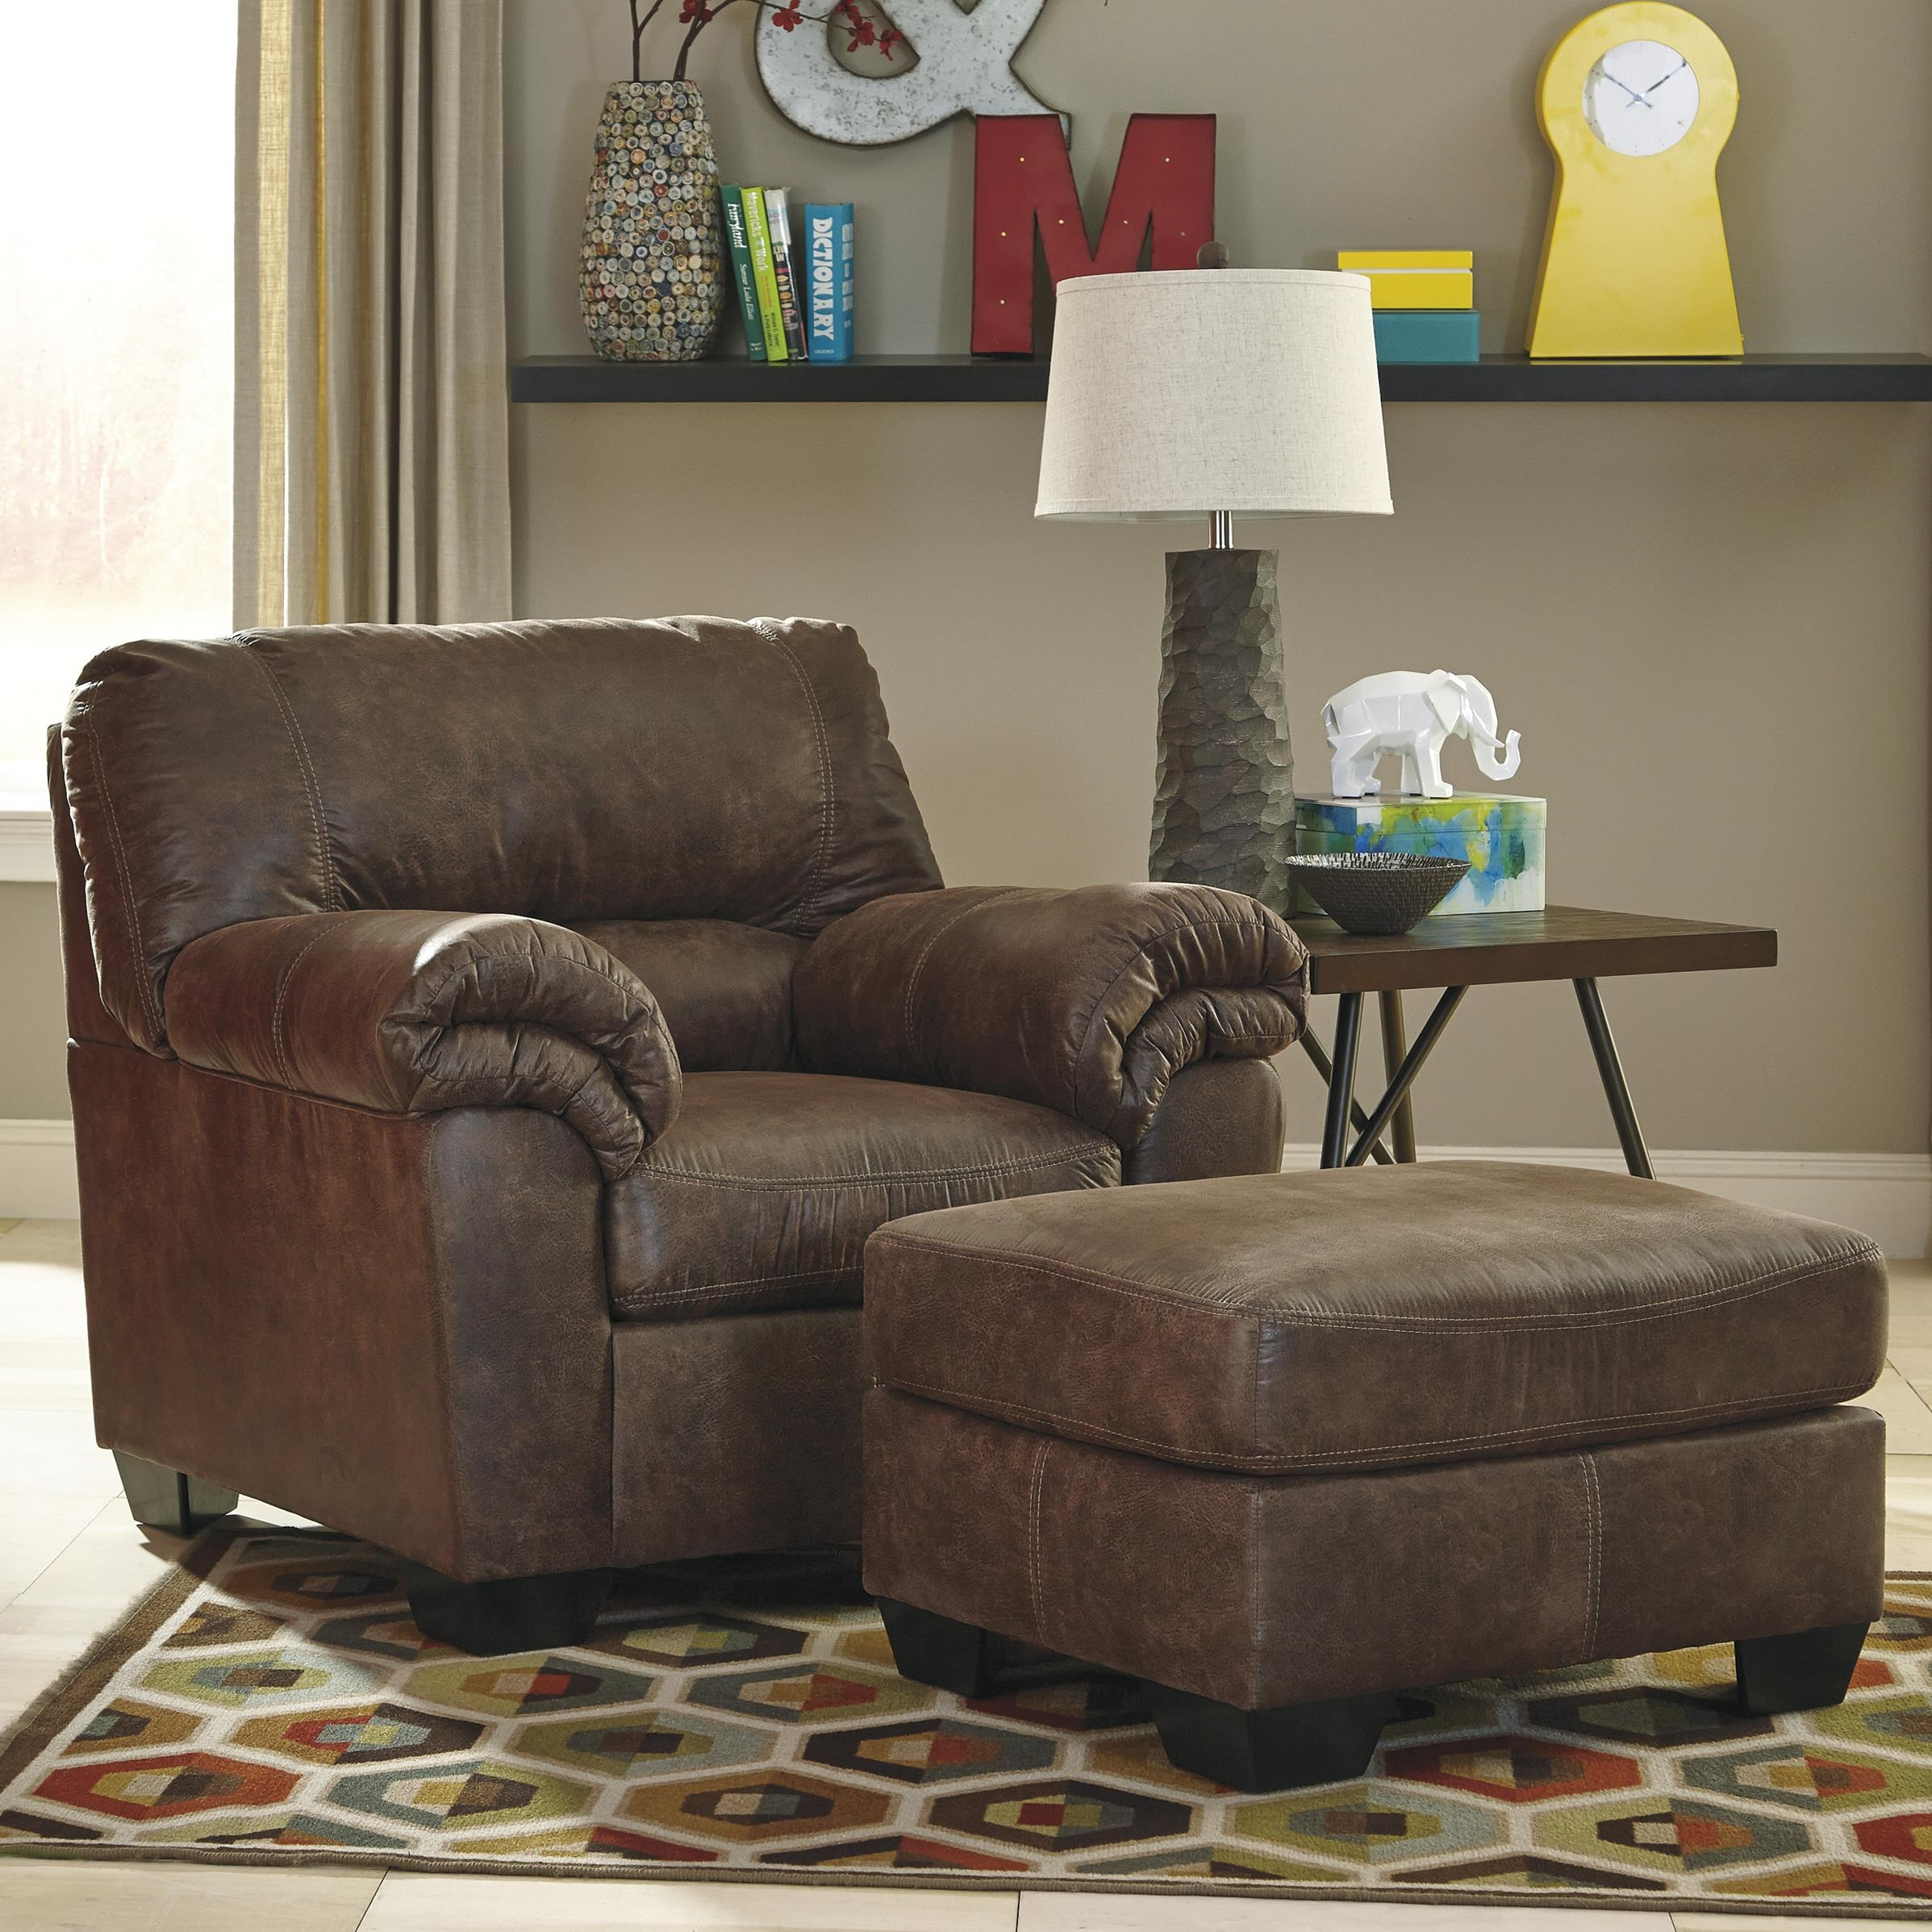 Signature Design By Ashley Bladen Casual Faux Leather Chair U0026 Ottoman